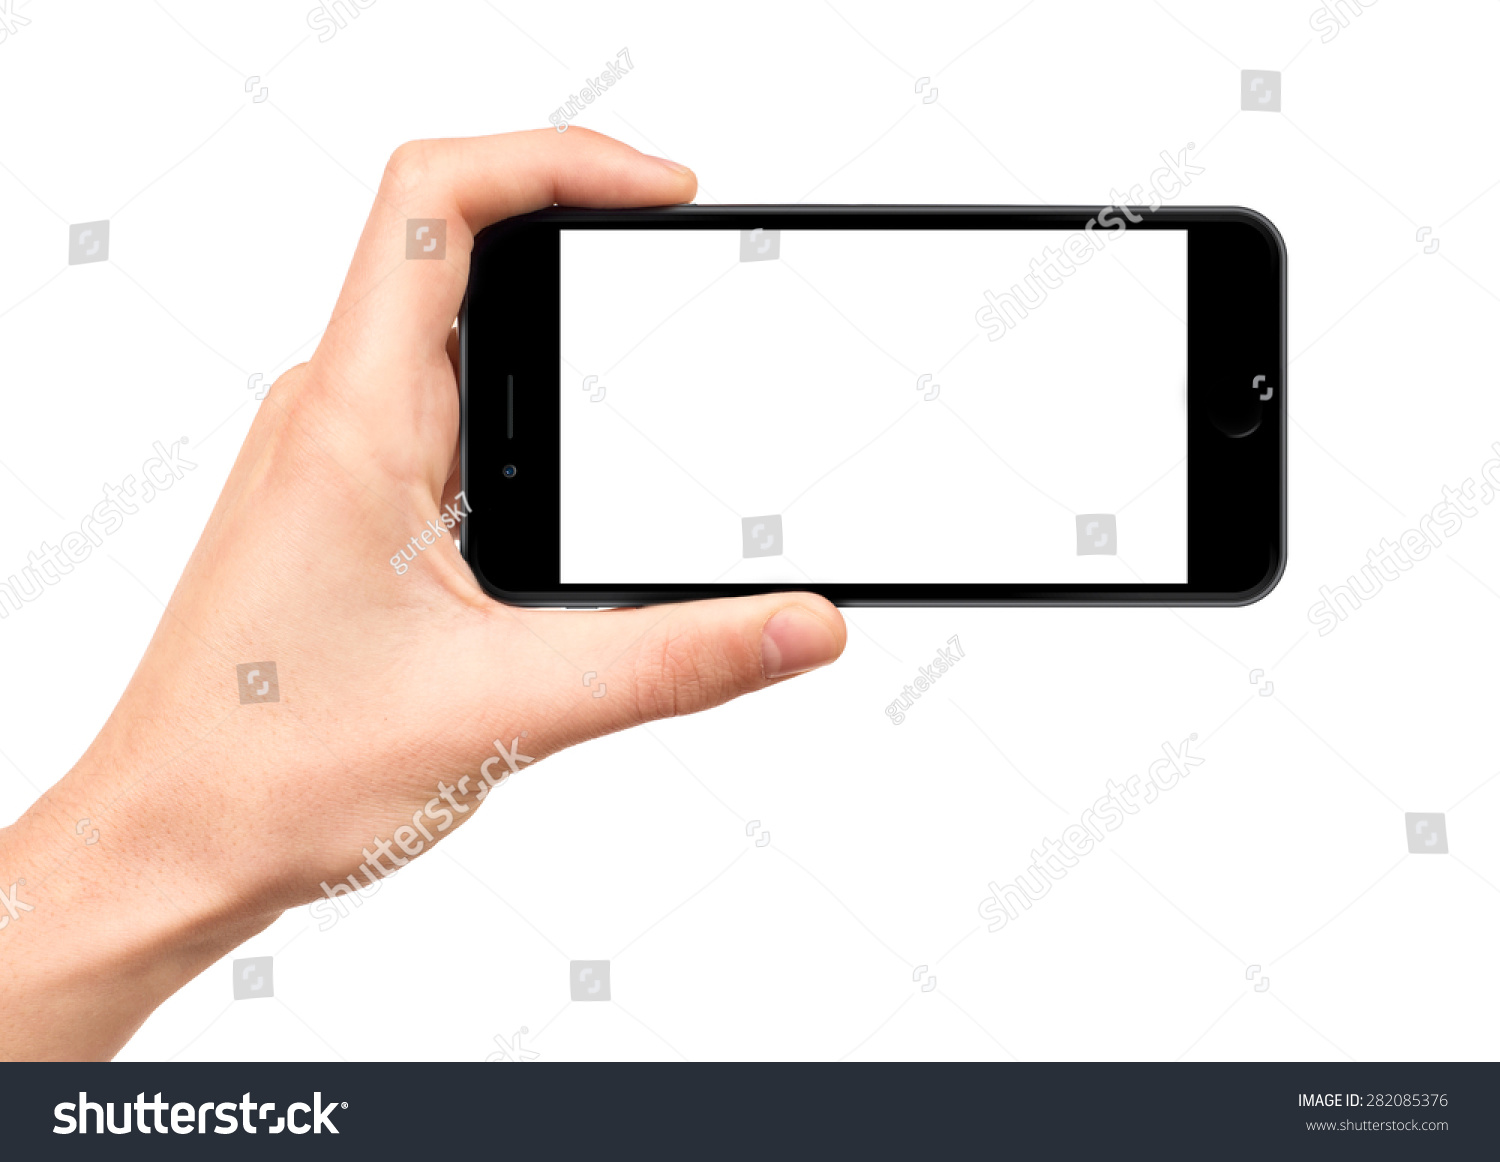 Man hand holding horizontal the black smartphone with blank screen, isolated on white background. #282085376